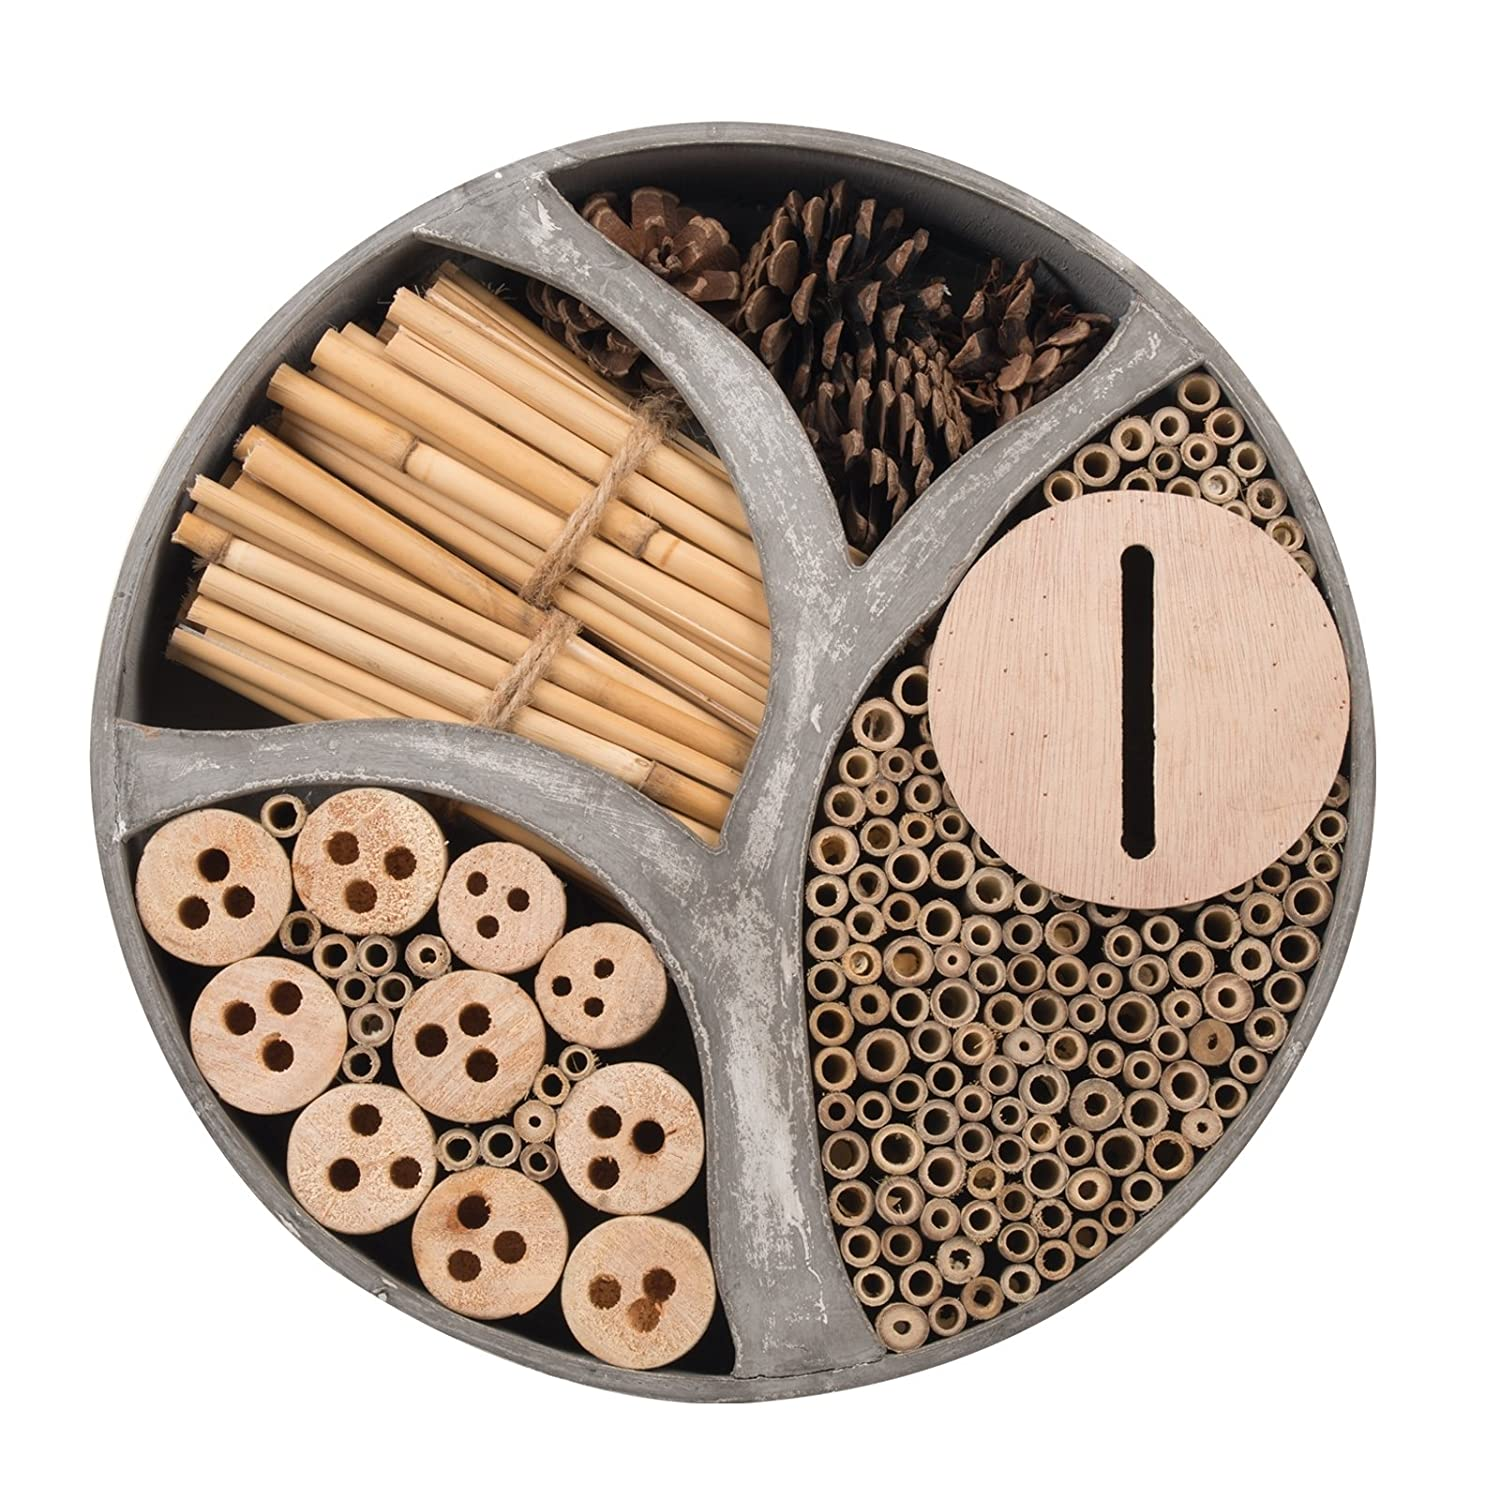 Gardigo 90567 - Natural Wooden Round Insect Hotel; Nesting/Hibernating Home; Bugs, Bees, Wasps, Butterflies House; Gift Idea; 30 x 30 x 6,5 cm